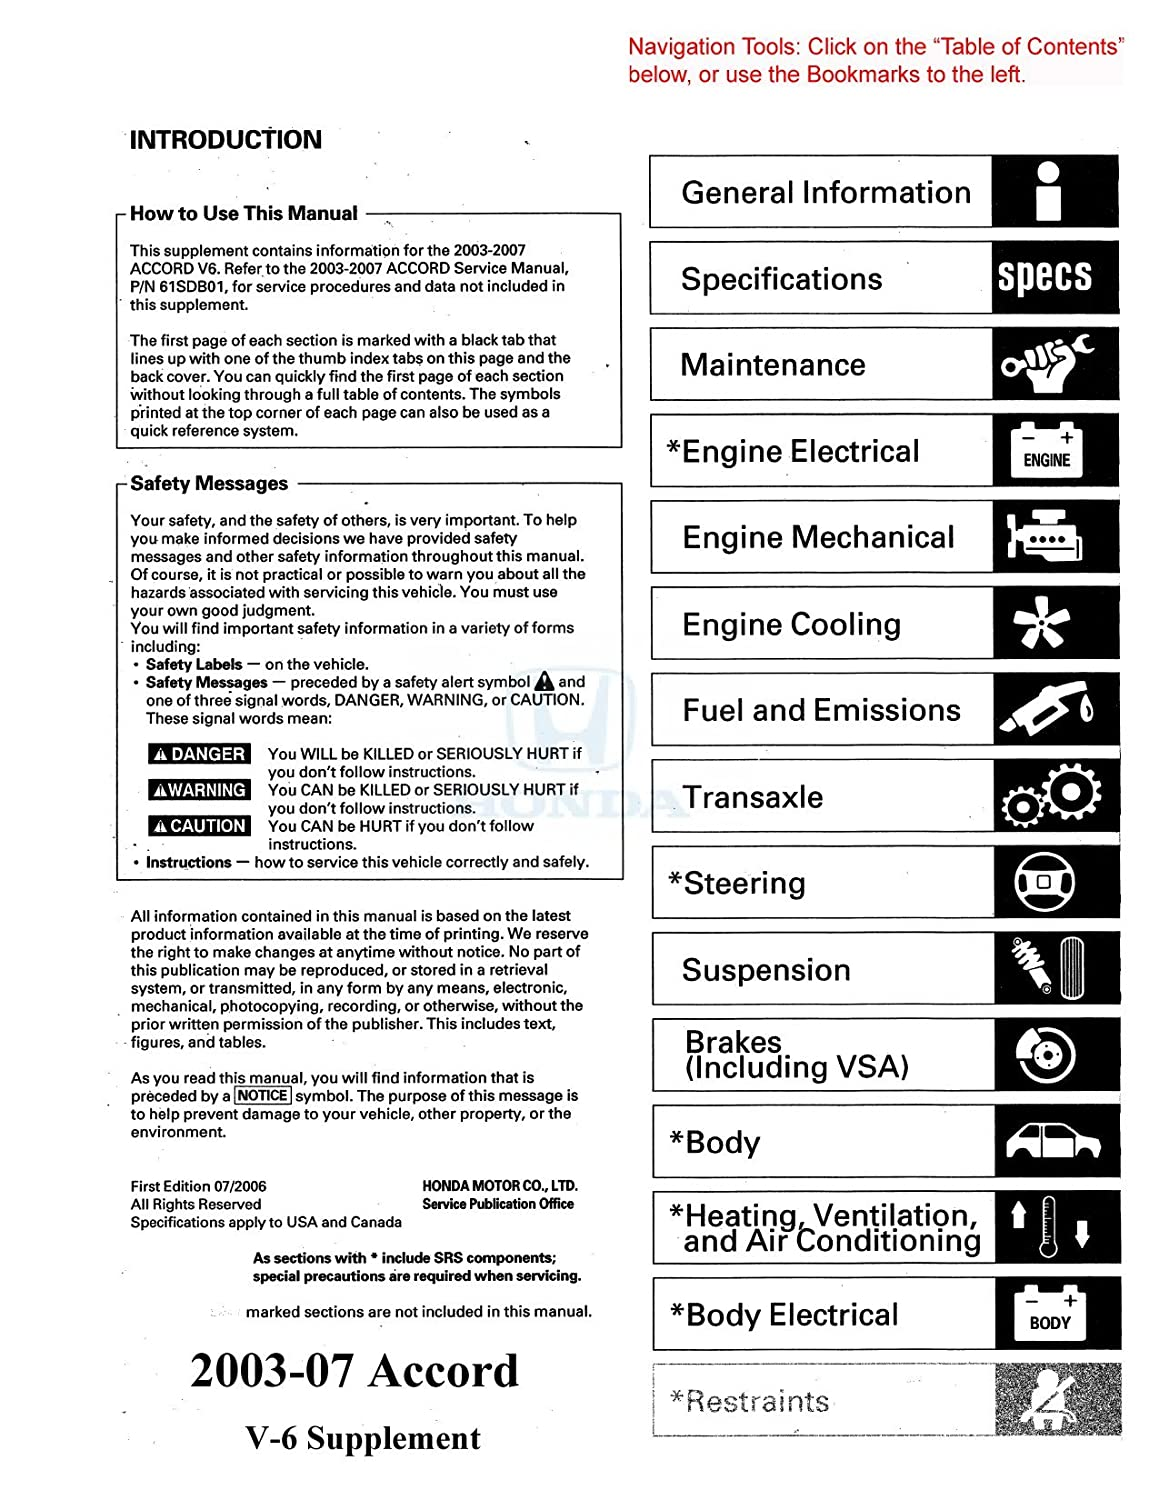 Amazon.com: bishko automotive literature 2003 2004 2005 2006 2007 Honda  Accord V6 Service Manual CD Supplement ONLY: Automotive